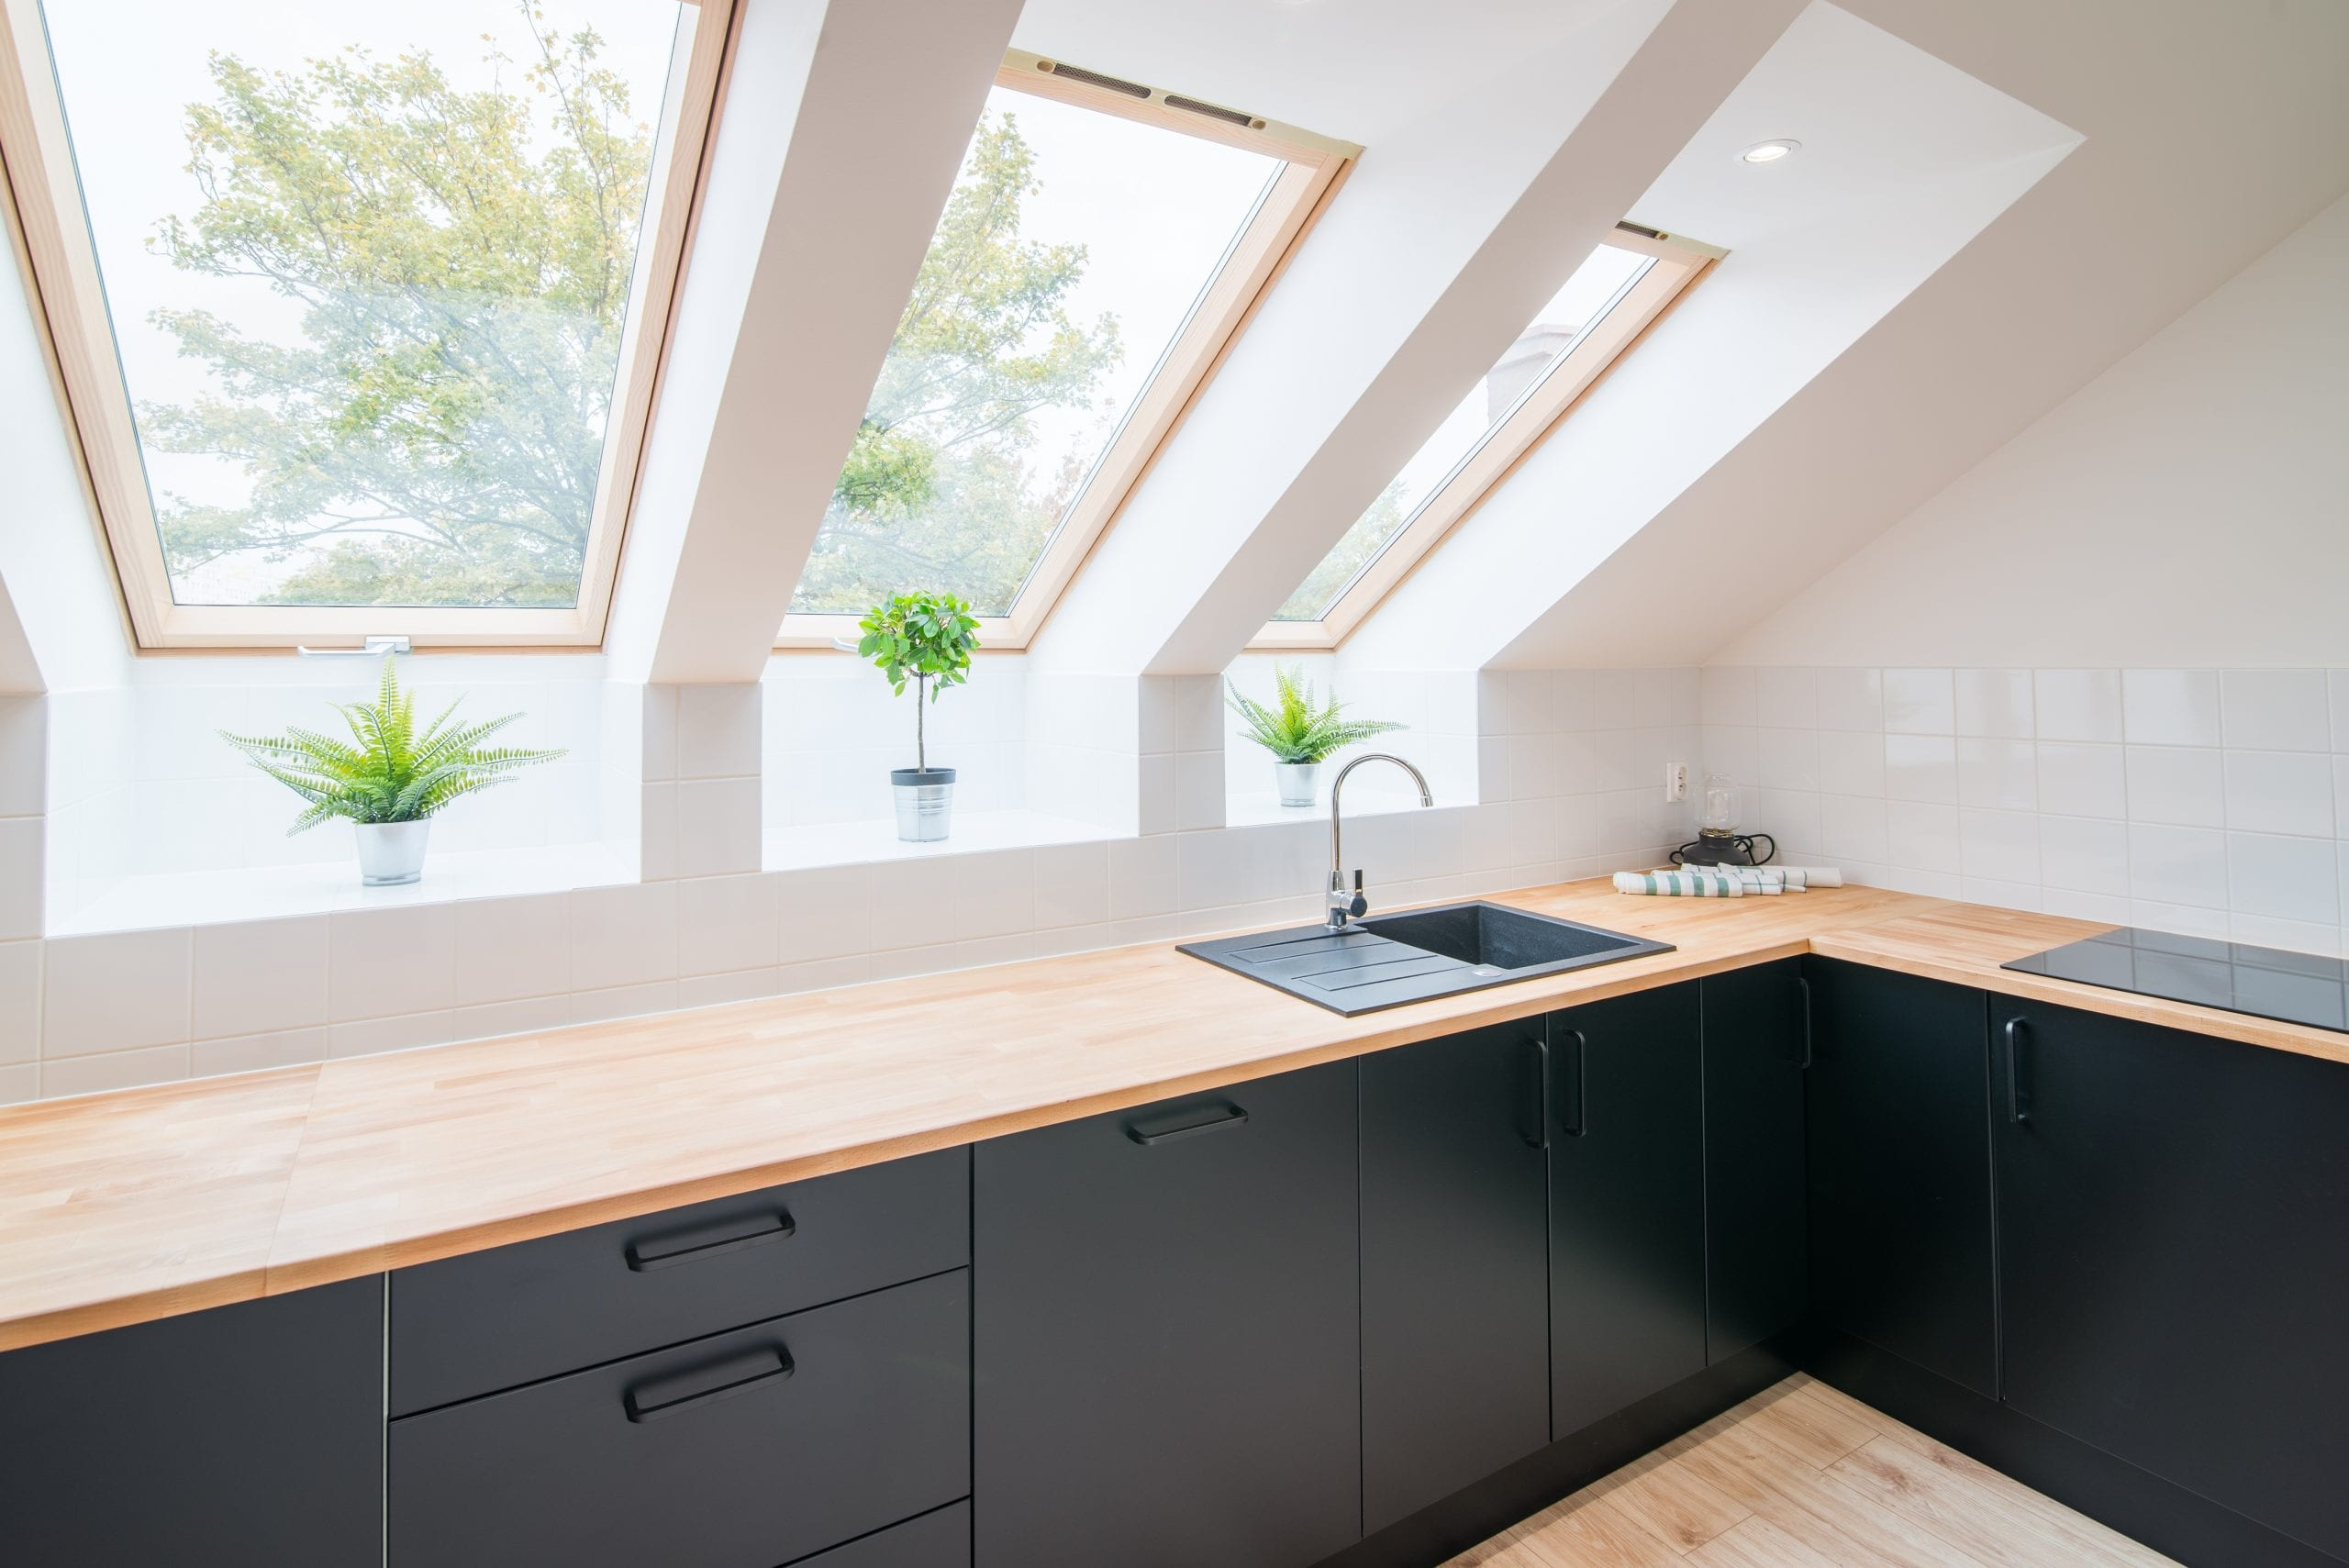 Bright kitchen with slanted ceiling